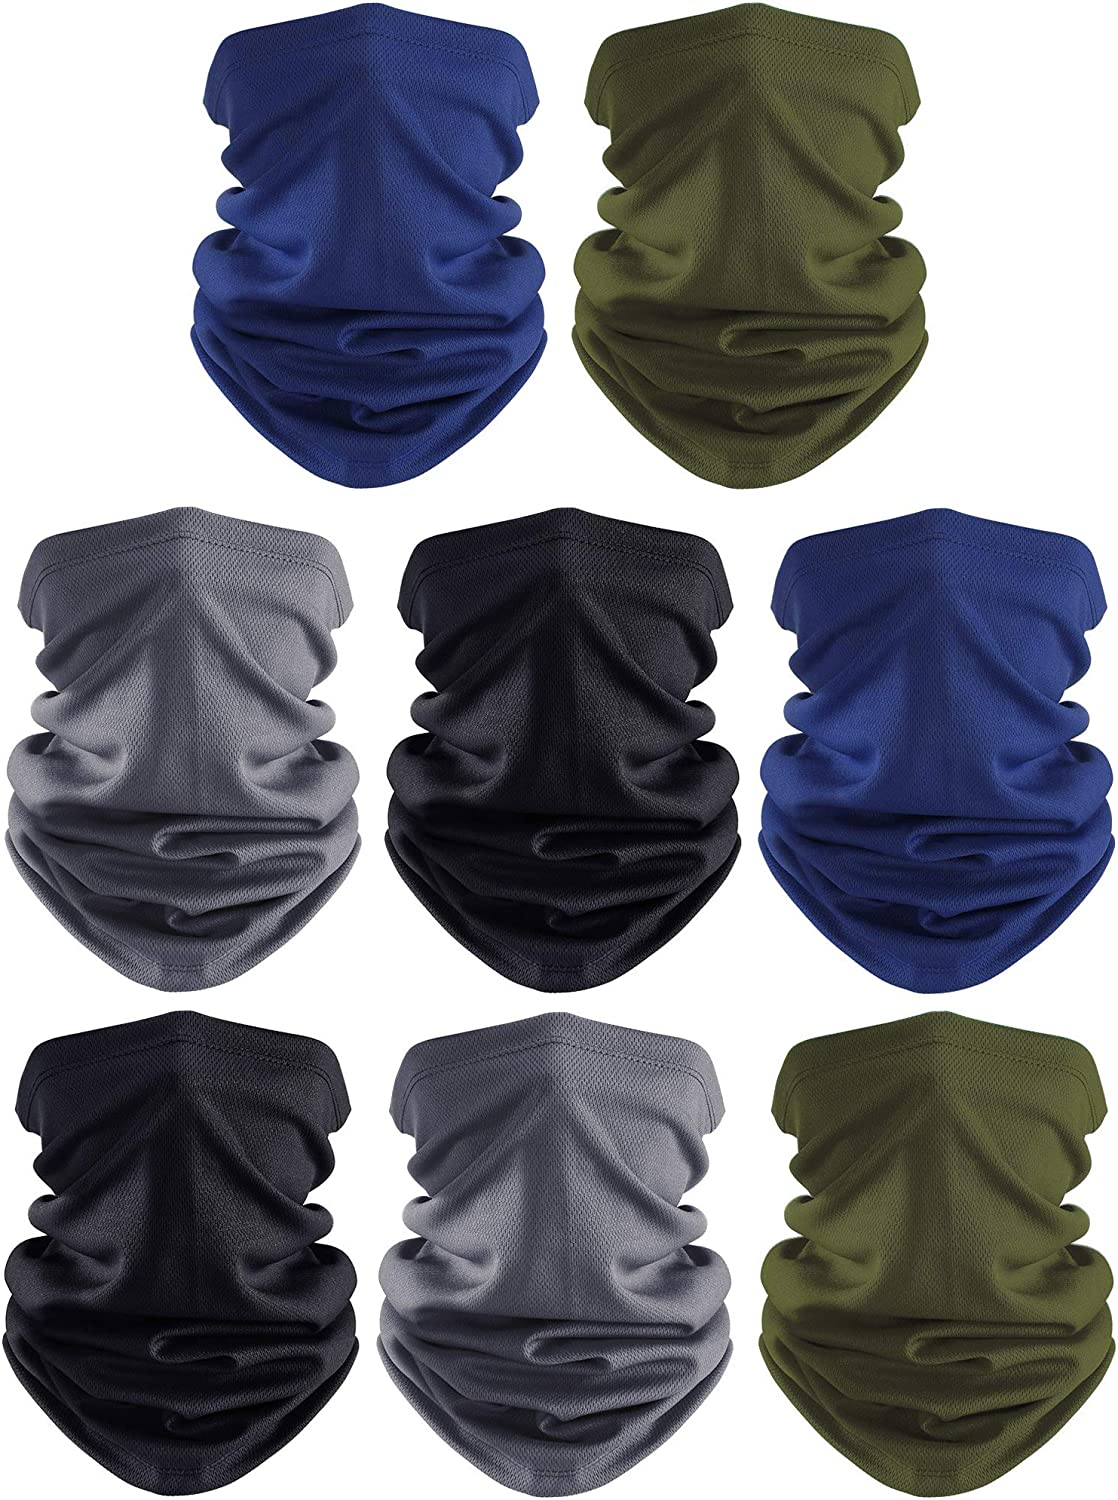 Northwest Los Angeles Rams Seamless Mask Neck Gaiter Windproof Scarf Sunscreen Breathable Bandana Balaclava For Outdoors